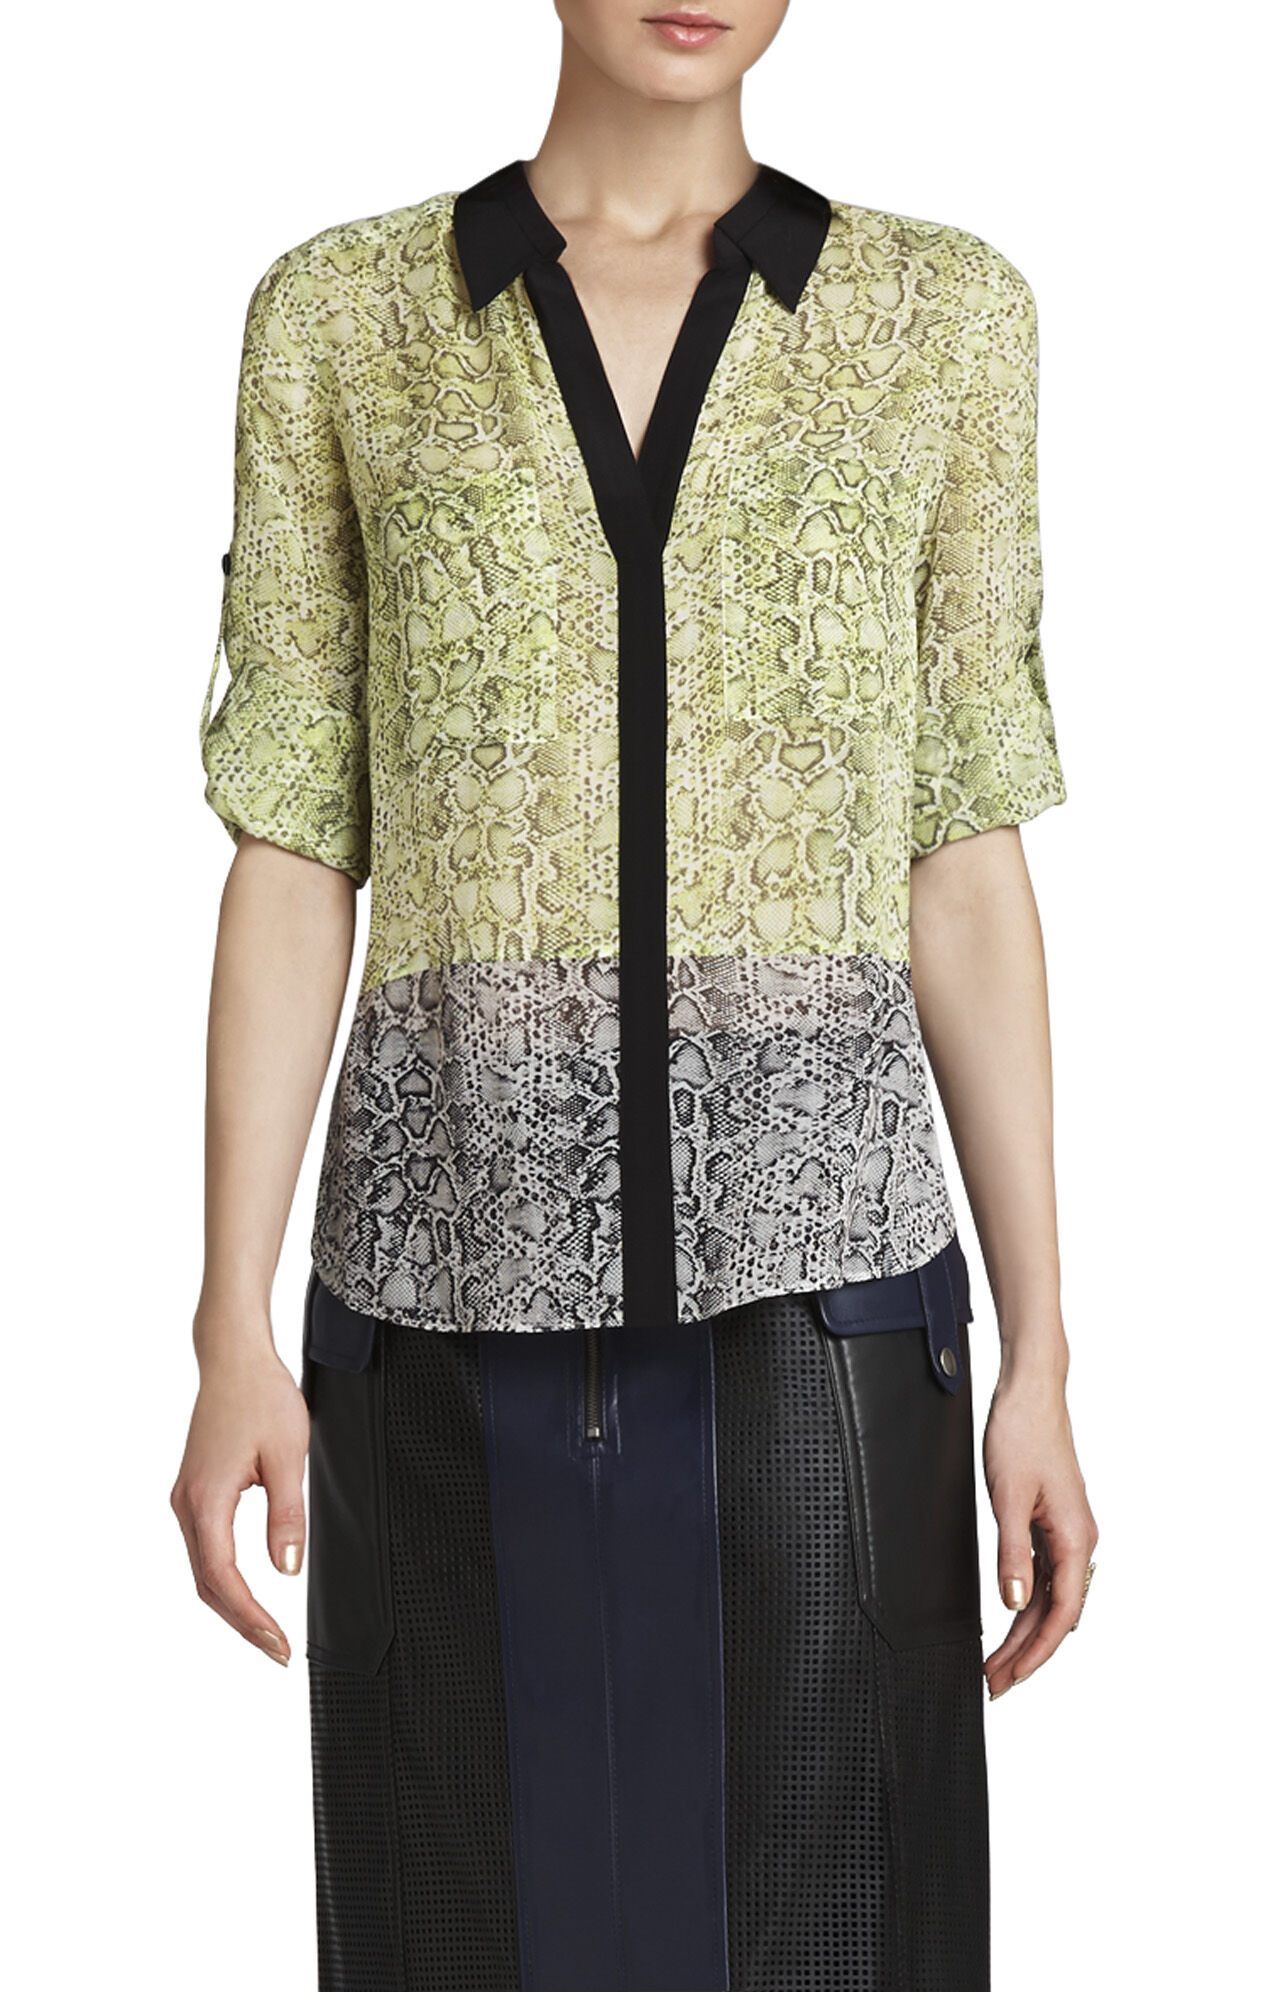 Sadie Silk Print-Blocked Shirt